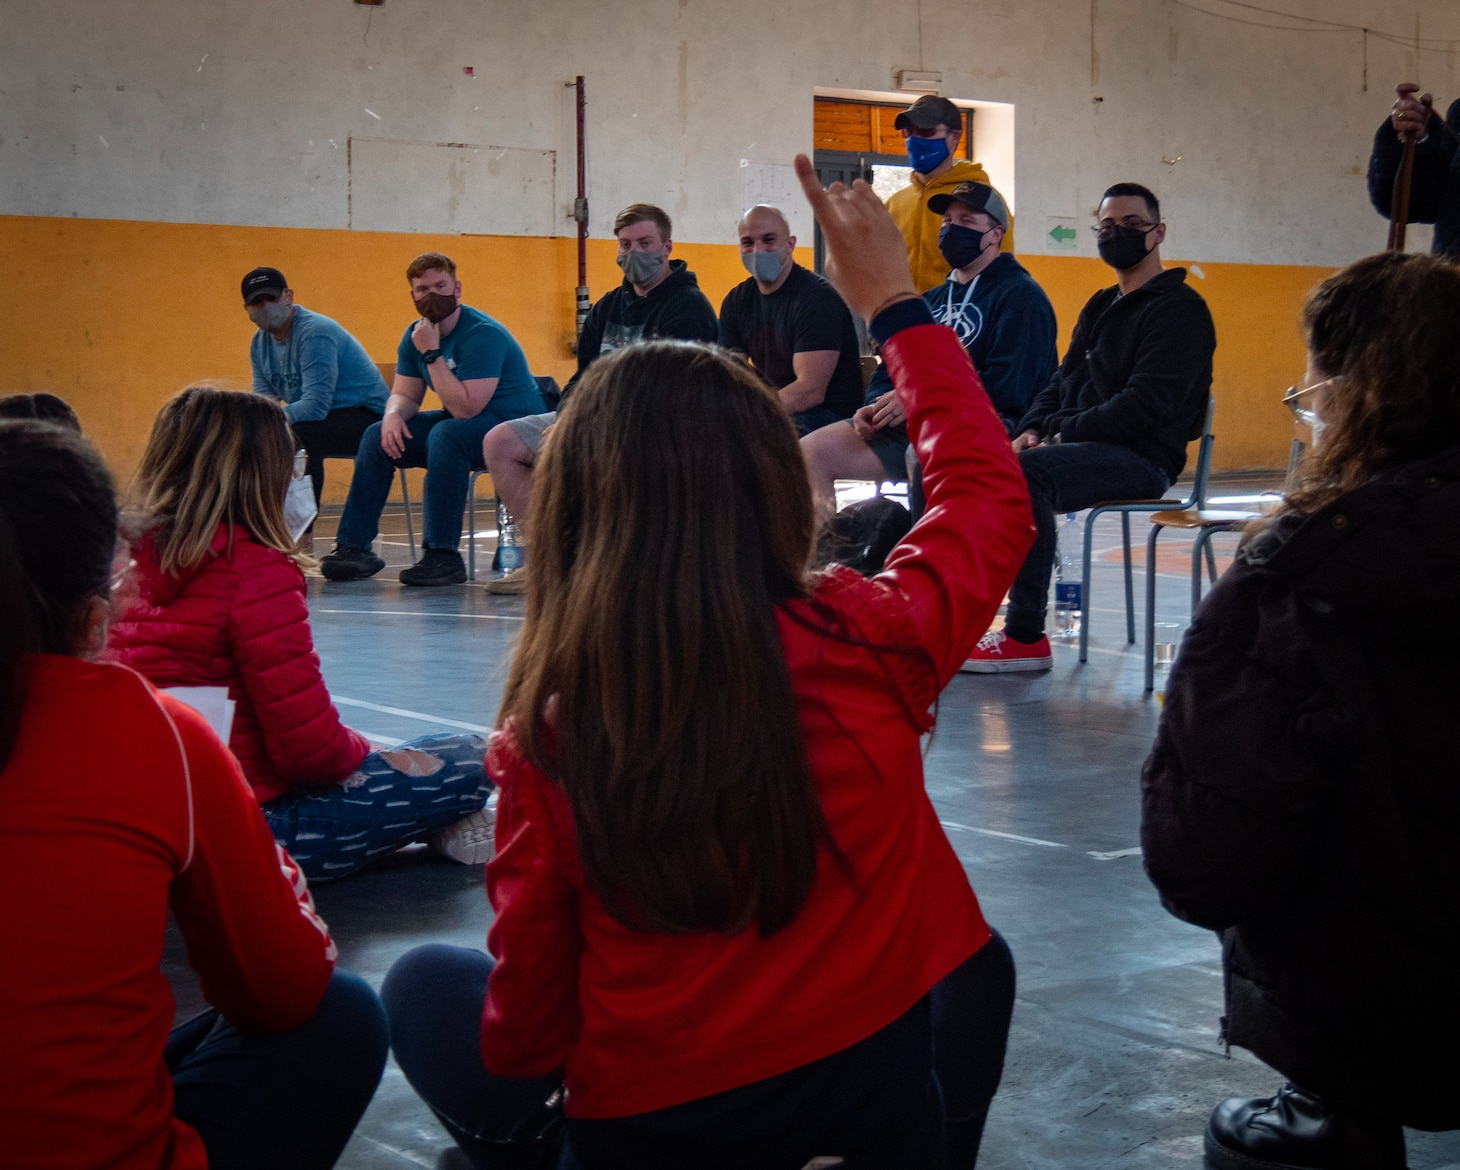 """210304-N-VH871-1536 SIGONELLA, Italy (March 4, 2021) Sailors assigned to the """"Grey Knights"""" of Patrol Squadron (VP) 46, assist Italian middle schoolers with their English proficiency as part of a community relations project, March 4, 2021. VP-46 is currently forward-deployed to the U.S. Sixth Fleet area of operations and is assigned to Commander, Task Force 67, responsible for tactical control of deployed maritime patrol and reconnaissance squadrons throughout Europe and Africa. U.S. Sixth Fleet, headquartered in Naples, Italy, conducts a full spectrum of joint and naval operations, often in concert with allied and interagency partners, in order to advance U.S. national security interests and stability in Europe and Africa. (U.S. Navy photo by Mass Communication Specialist 2nd Class Austin Ingram/ Released)"""